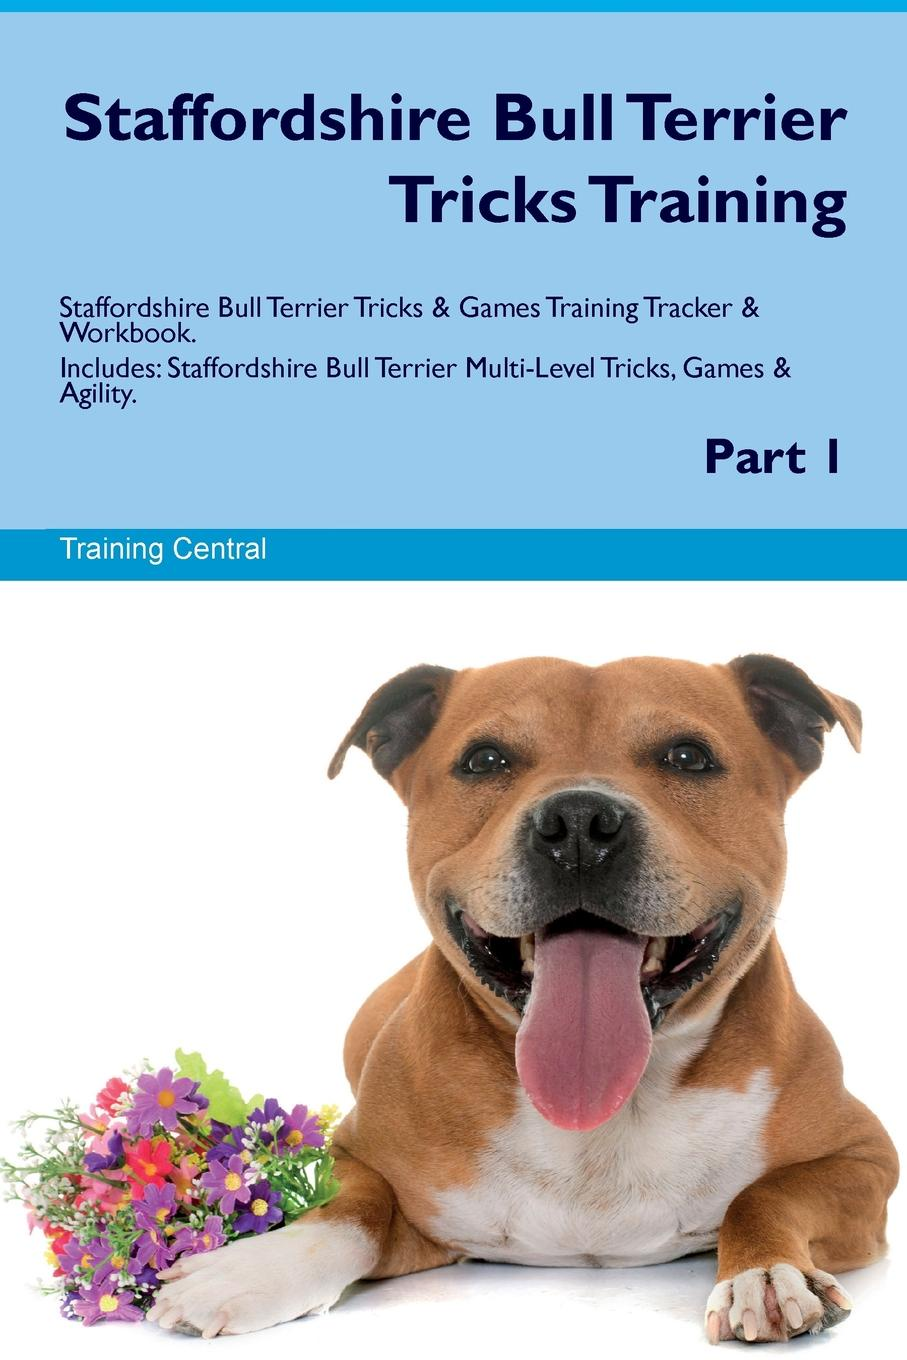 Training Central Staffordshire Bull Terrier Tricks Training Staffordshire Bull Terrier Tricks & Games Training Tracker & Workbook. Includes. Staffordshire Bull Terrier Multi-Level Tricks, Games & Agility. Part 1 training central cesky terrier tricks training cesky terrier tricks